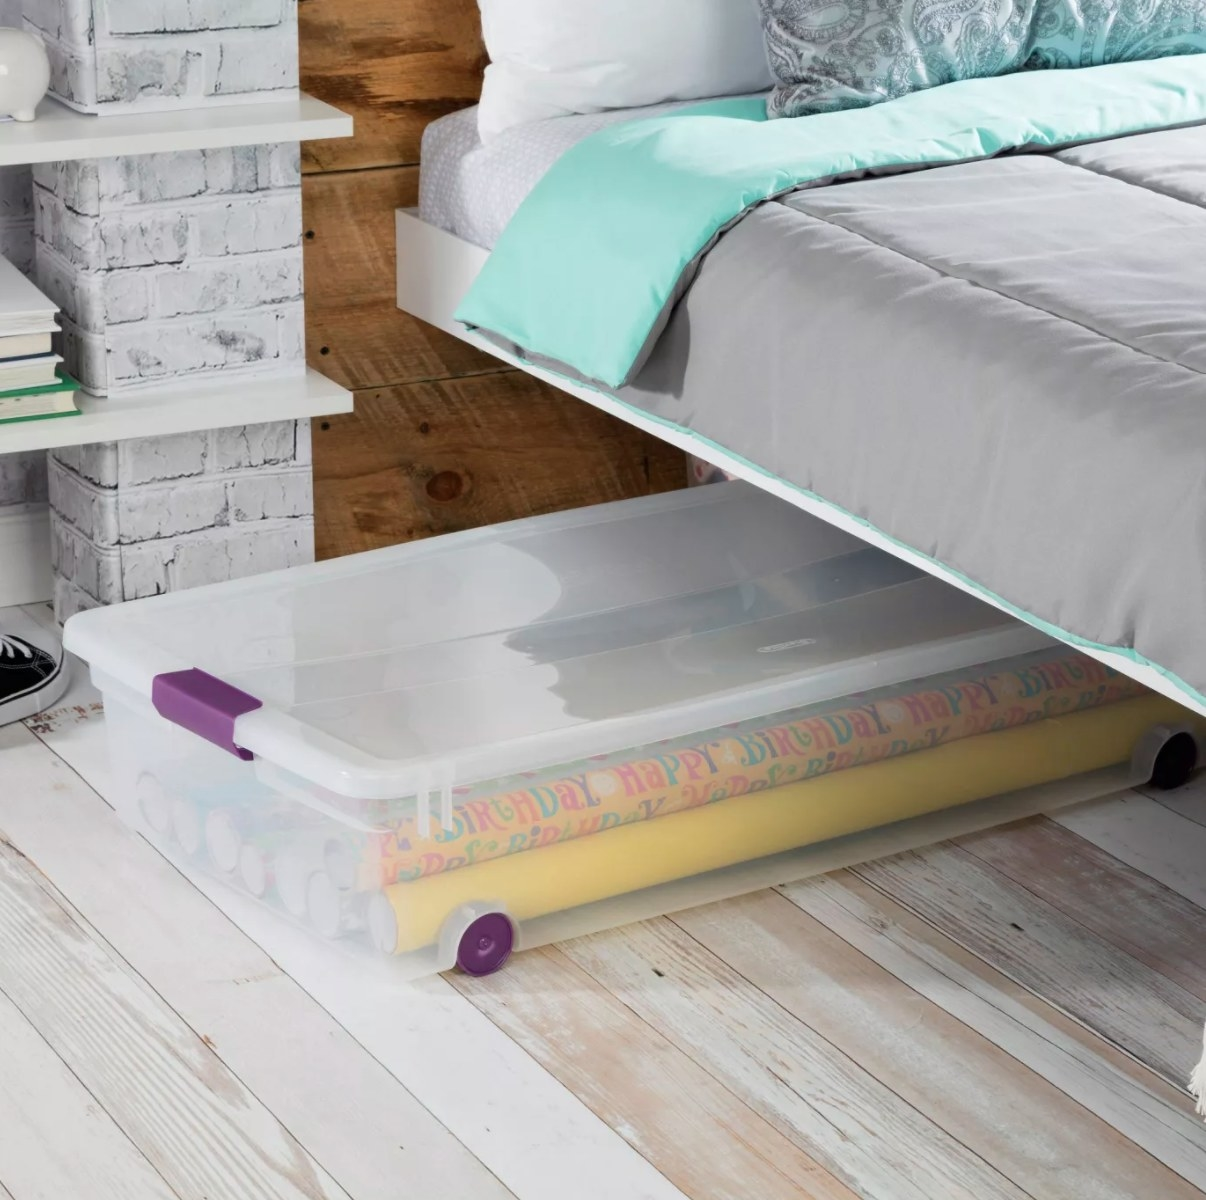 The rolling box under a bed